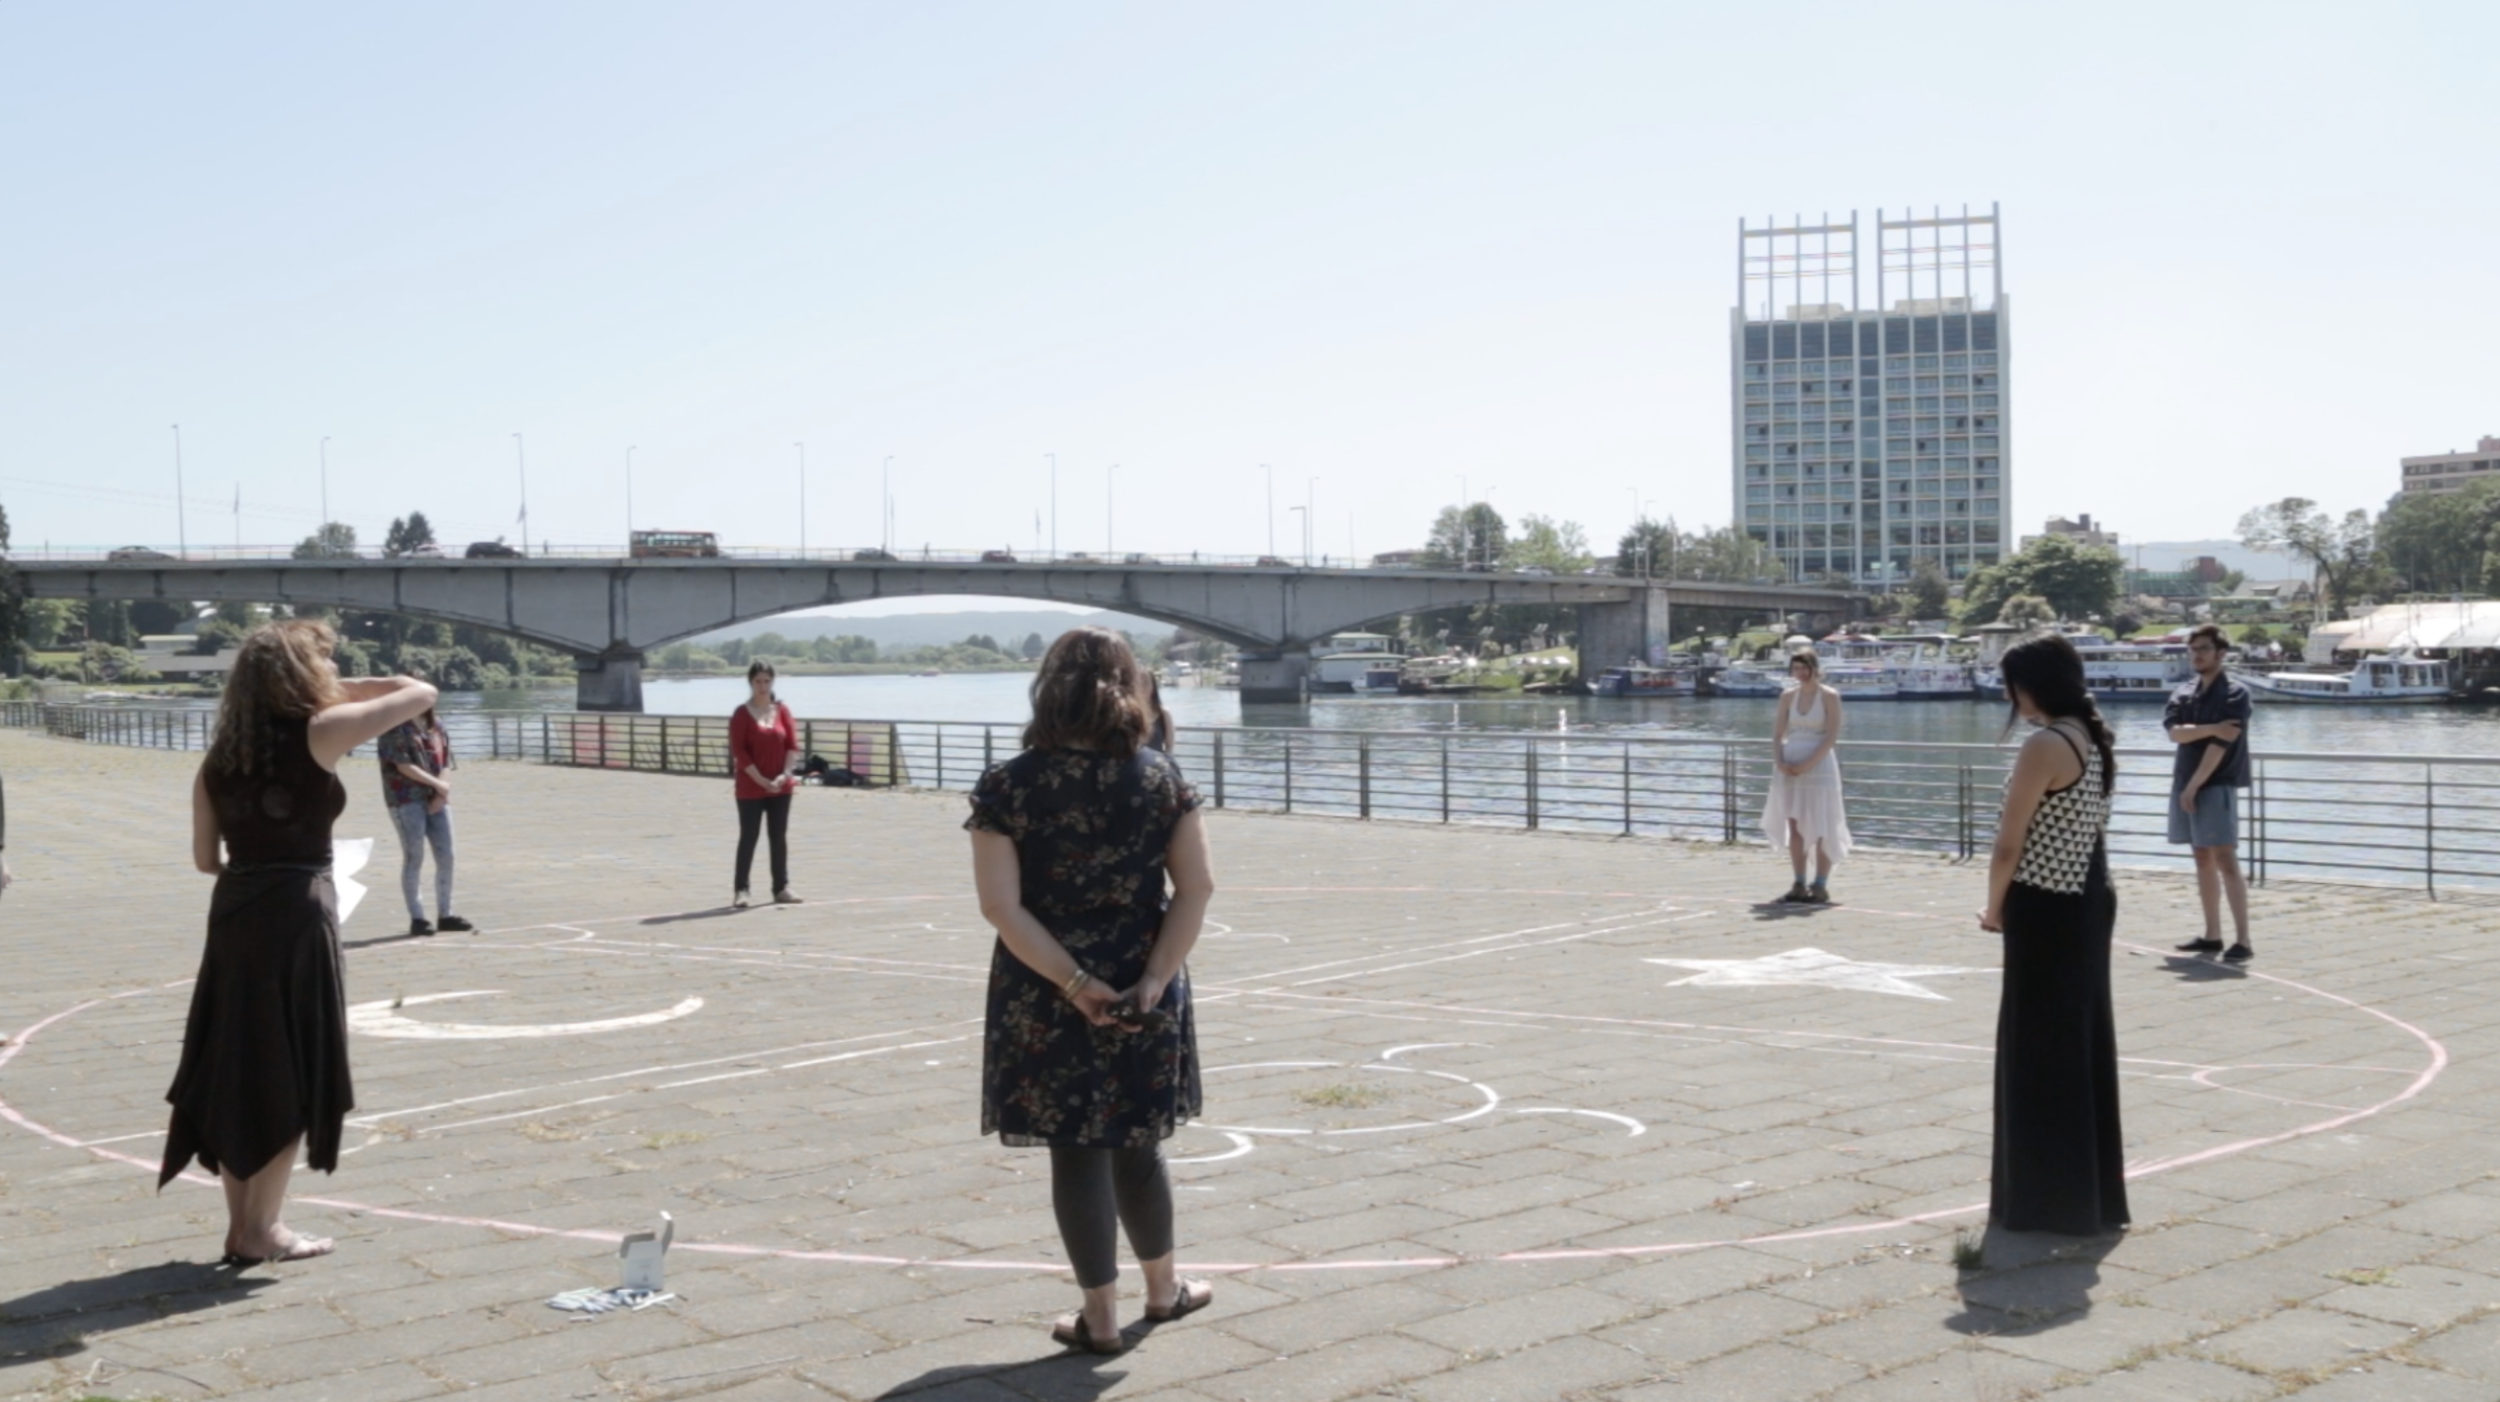 Judith did an art performance, with the students, drawing a gigantic kultrun on the boardwalk by the Calle Calle river